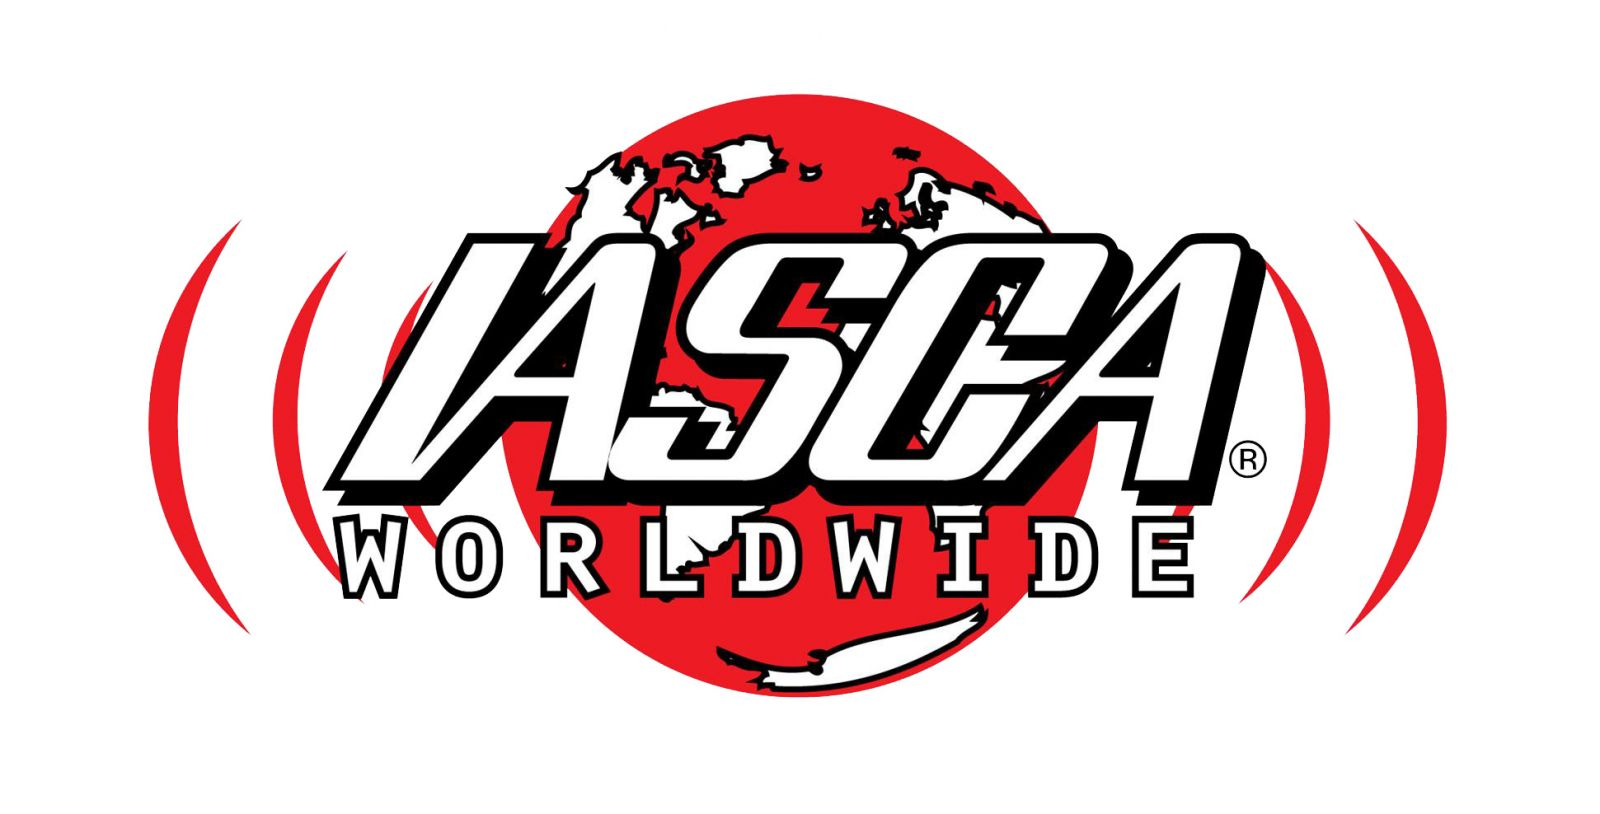 Iasca World WIde Car Stereo Contest